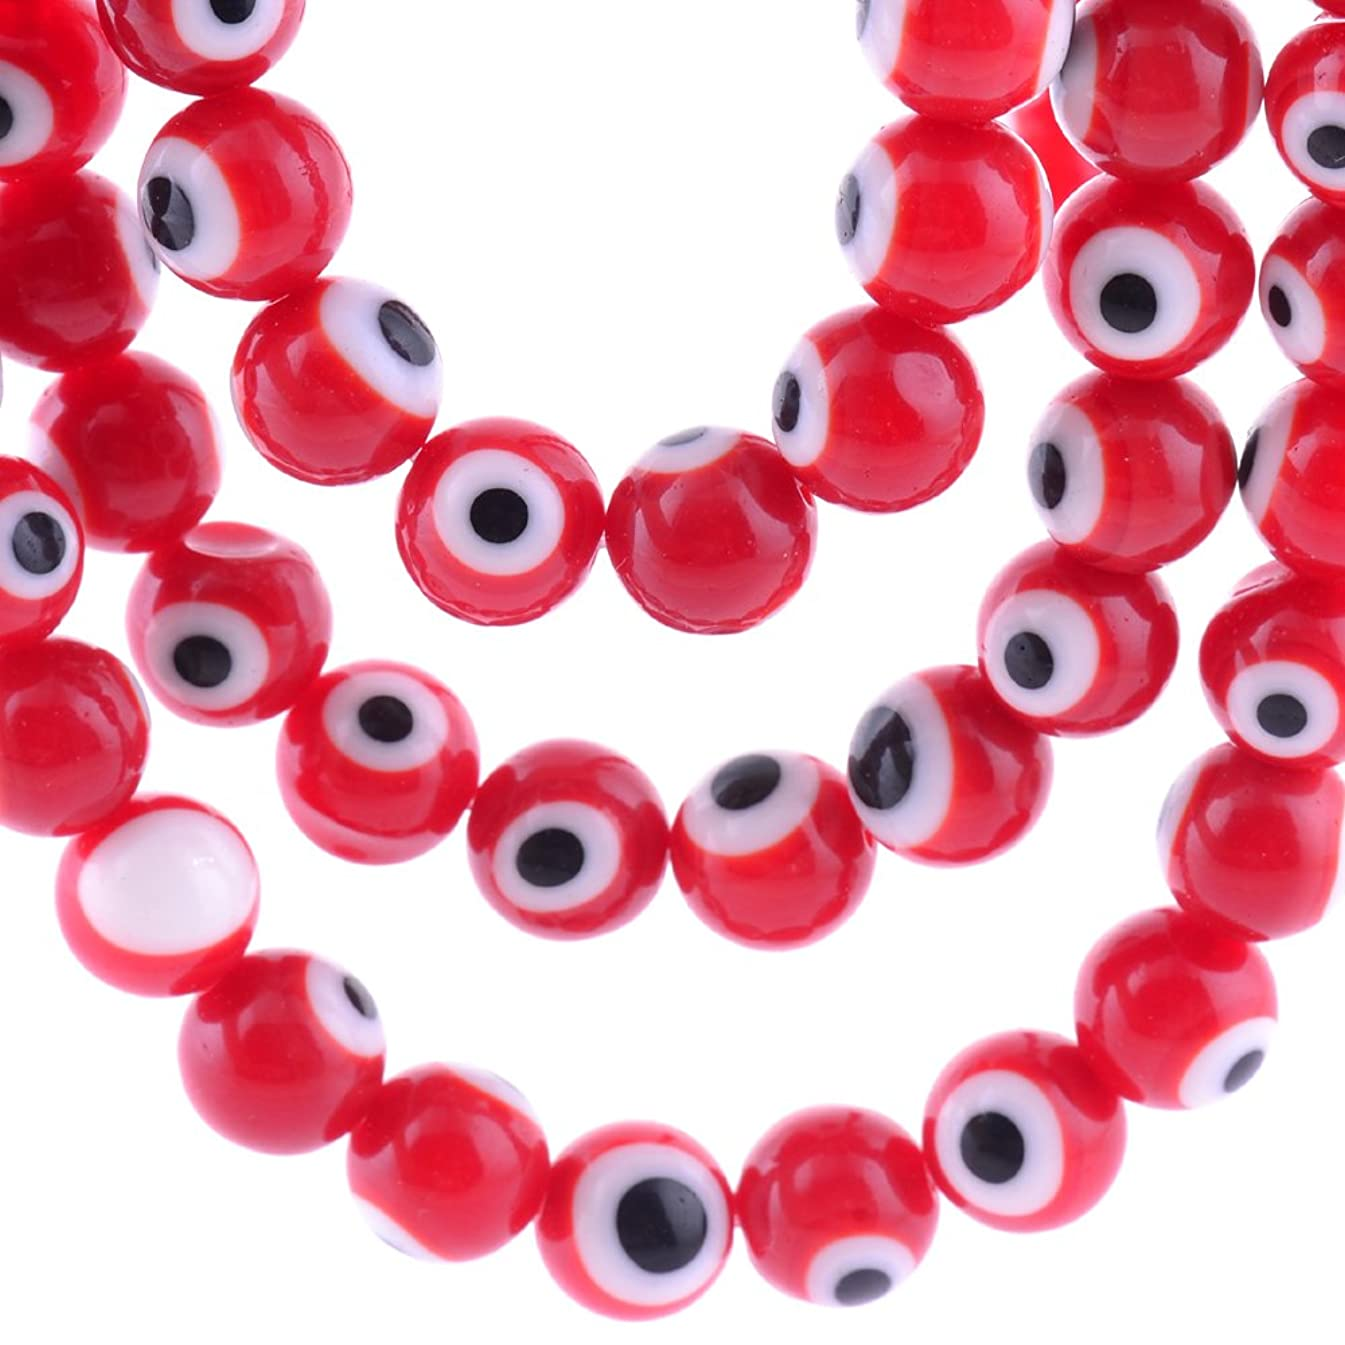 6mm 200 Pcs Evil Eye Glass Beads Red Colors of Jewelry Findings for Bracelet,Necklace or Others